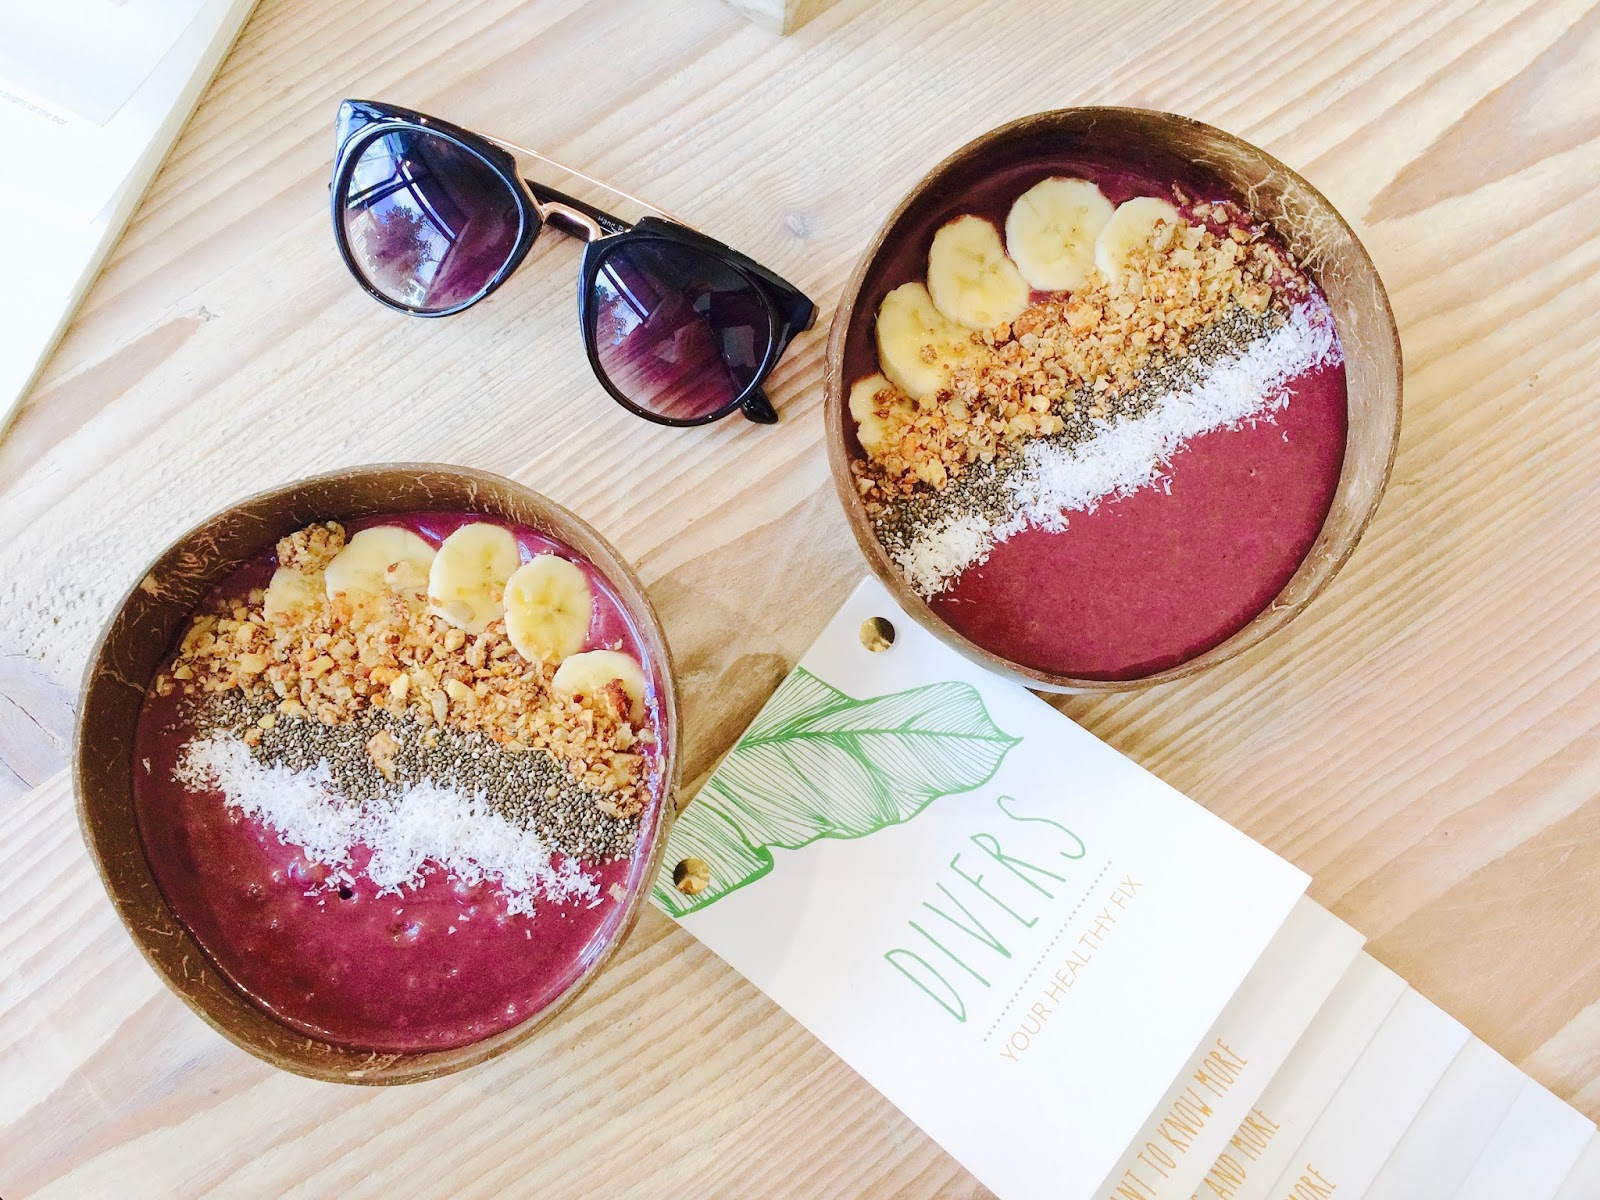 Divers | Açaí Bowls in Antwerp